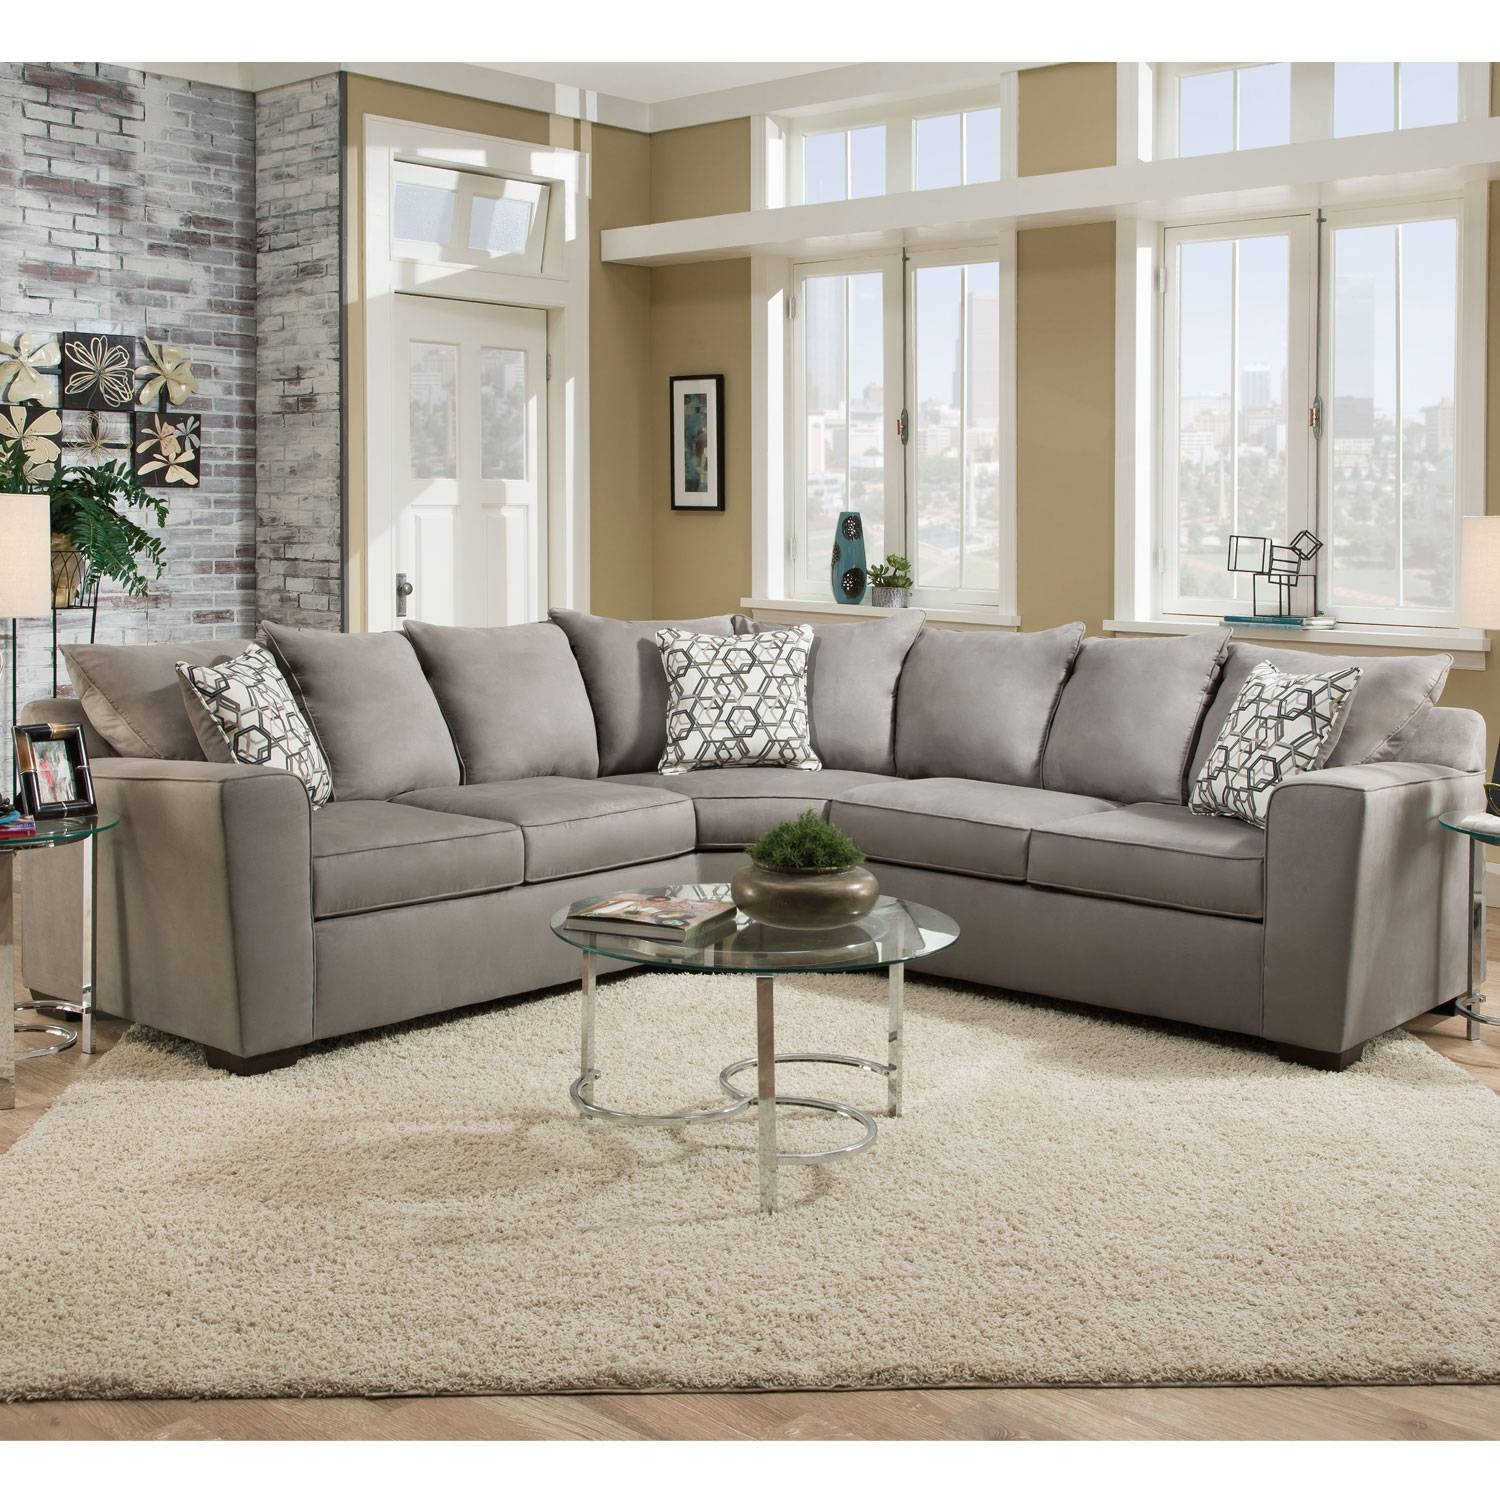 Furniture: Simmons Sofa For Comfortable Seating — Threestems For Simmons Microfiber Sofas (View 11 of 15)